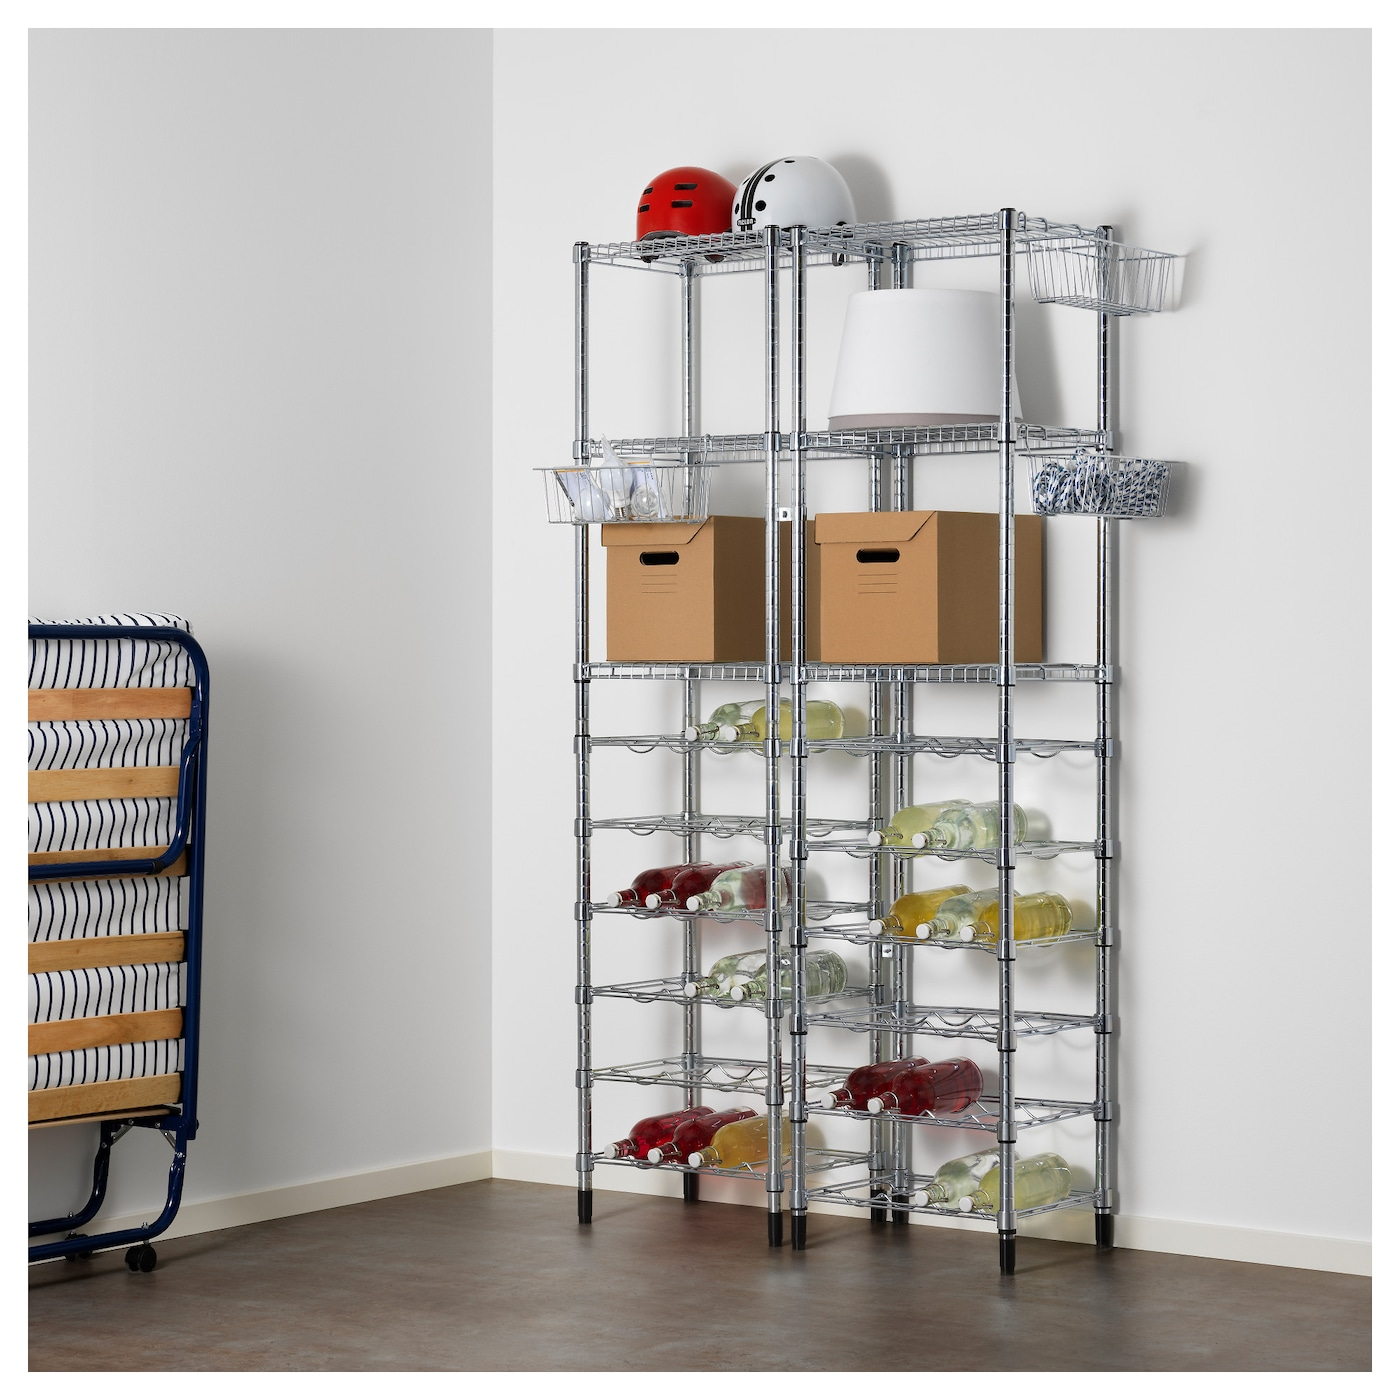 IKEA OMAR 2 shelf sections Easy to assemble – no tools required.